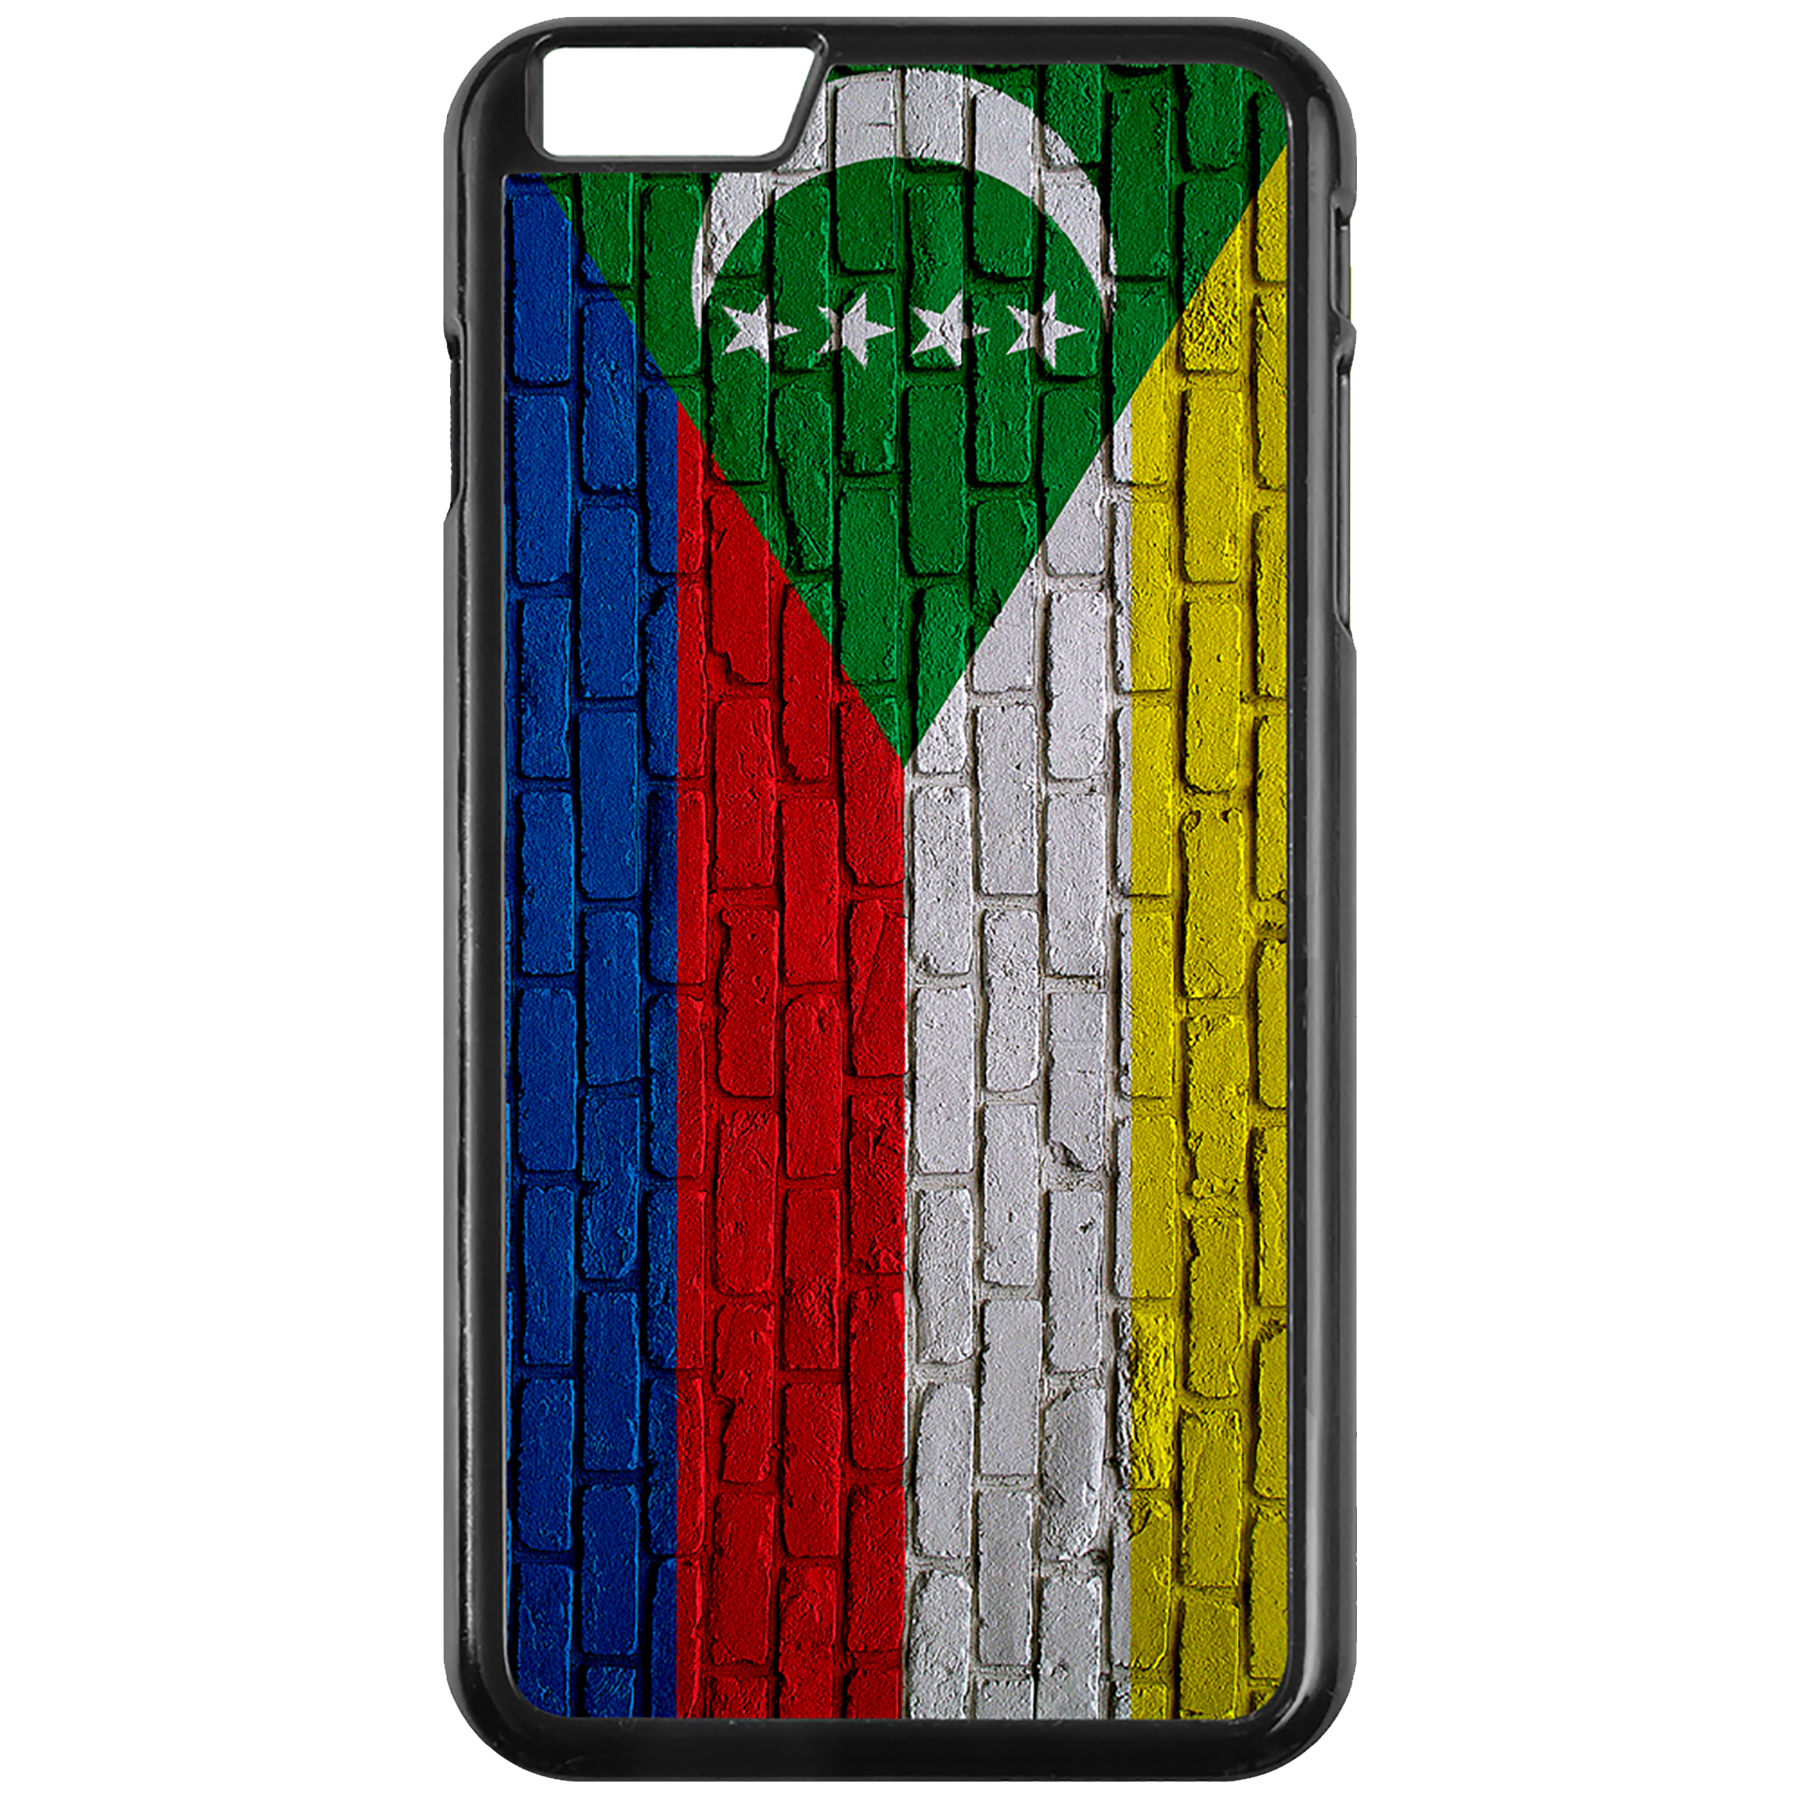 Apple-iPhone-Case-with-Flag-of-Comoros-Comorian-Many-Design-Options thumbnail 53